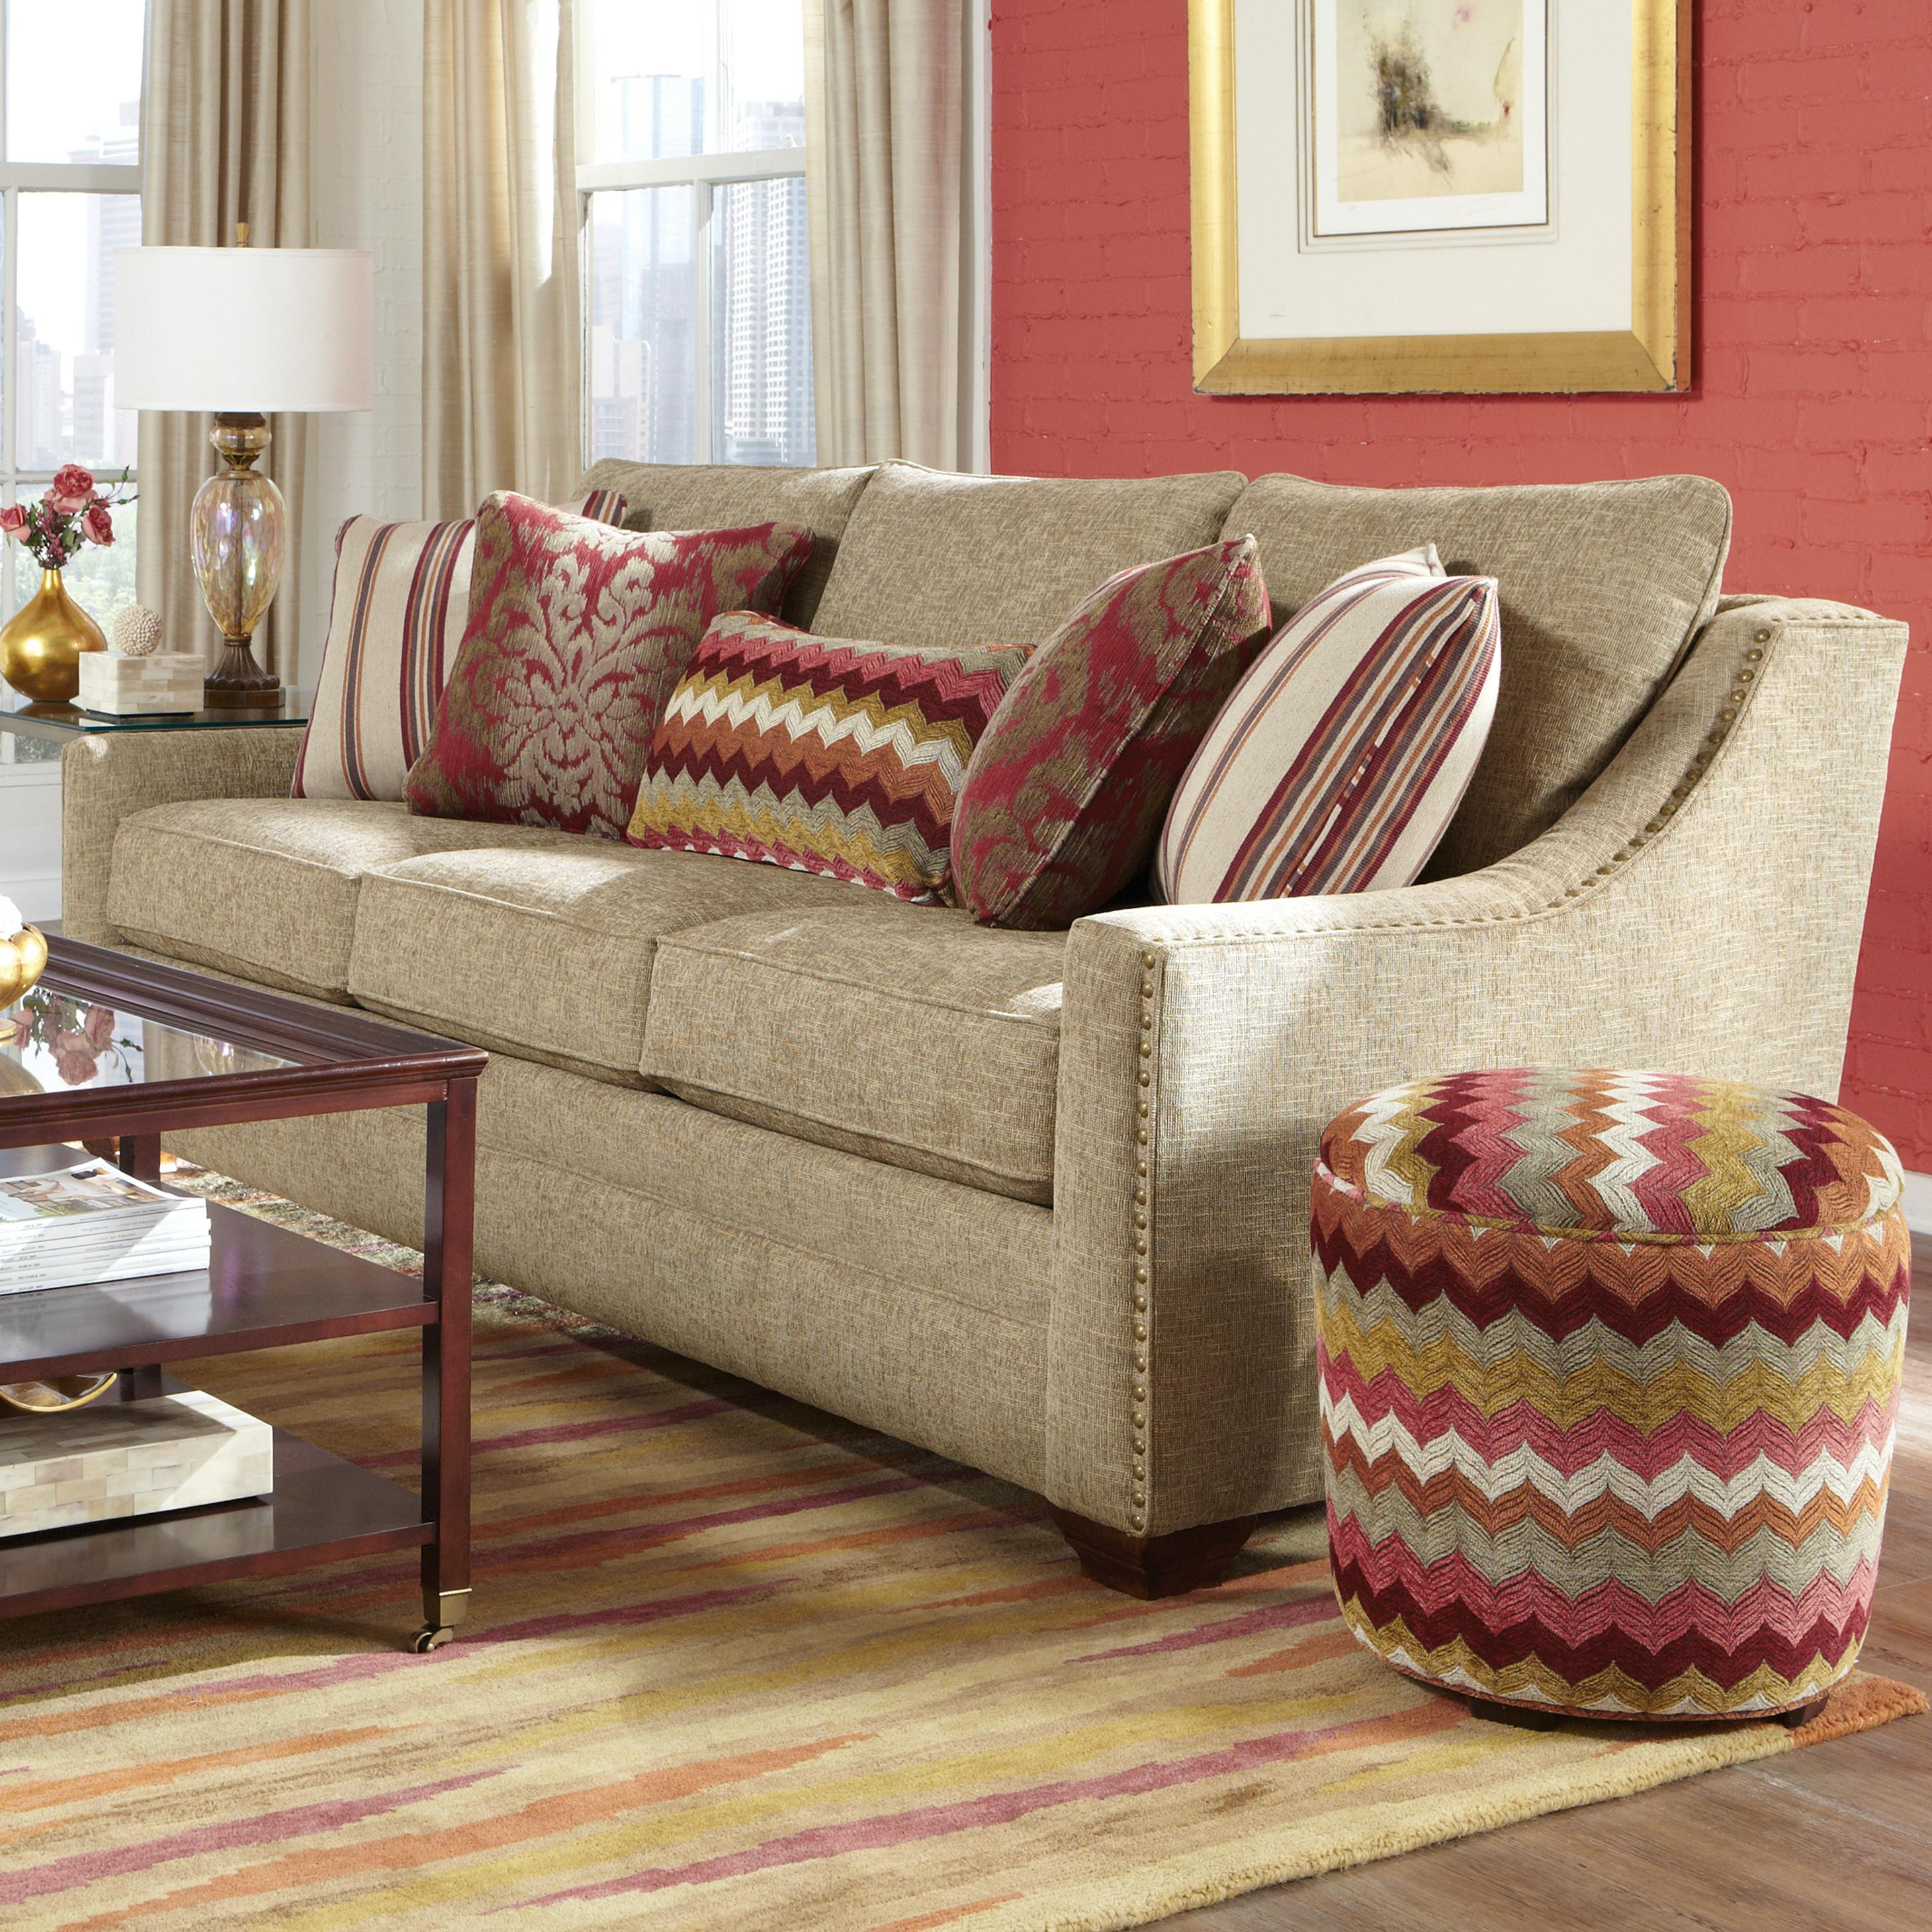 Oversized Sofa Pillows: Transitional Sofa With Oversized Nailheads And Toss